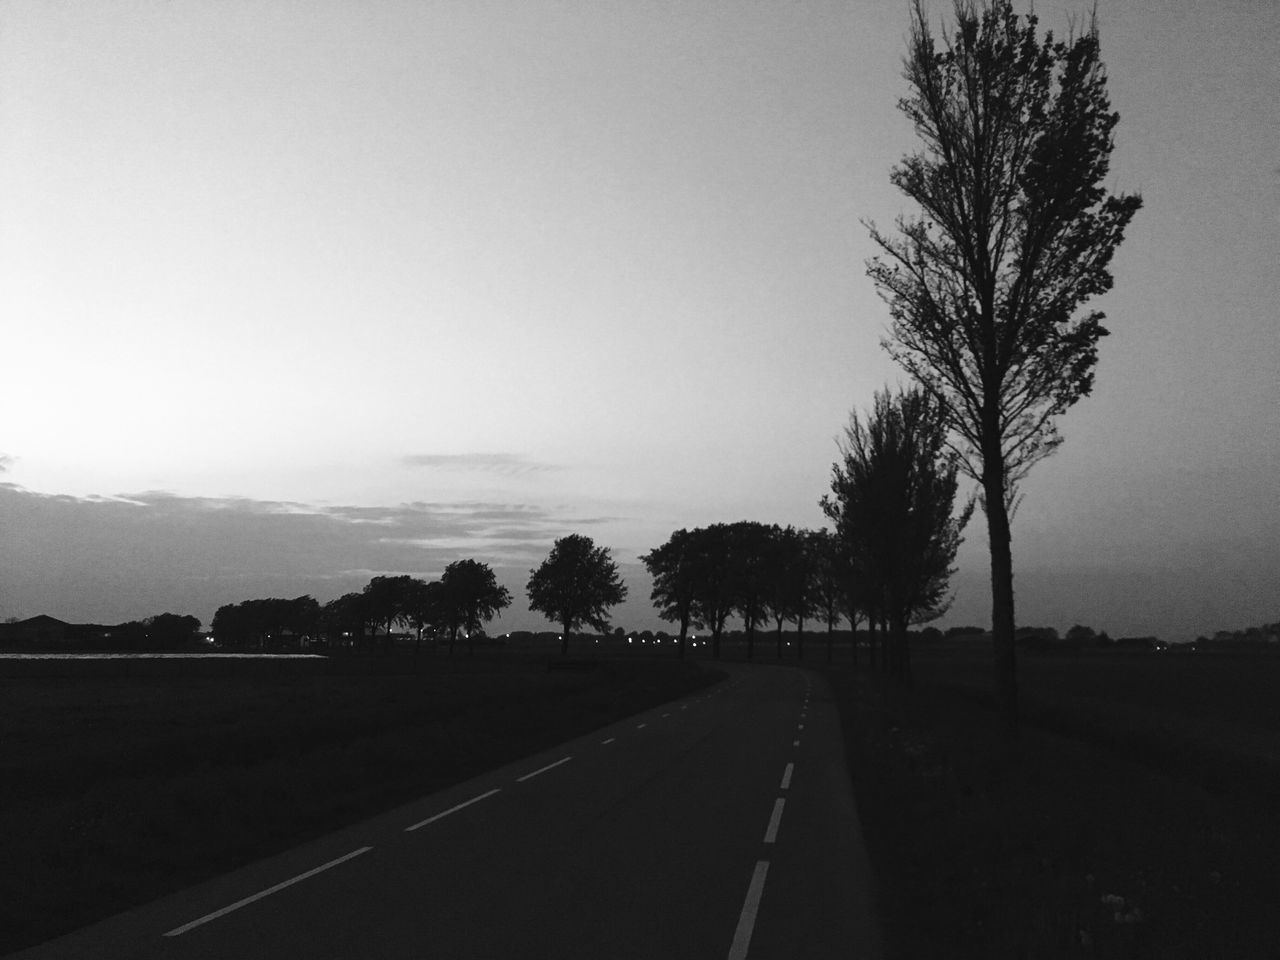 road, tree, the way forward, landscape, transportation, nature, no people, tranquil scene, tranquility, scenics, silhouette, clear sky, outdoors, sky, day, beauty in nature